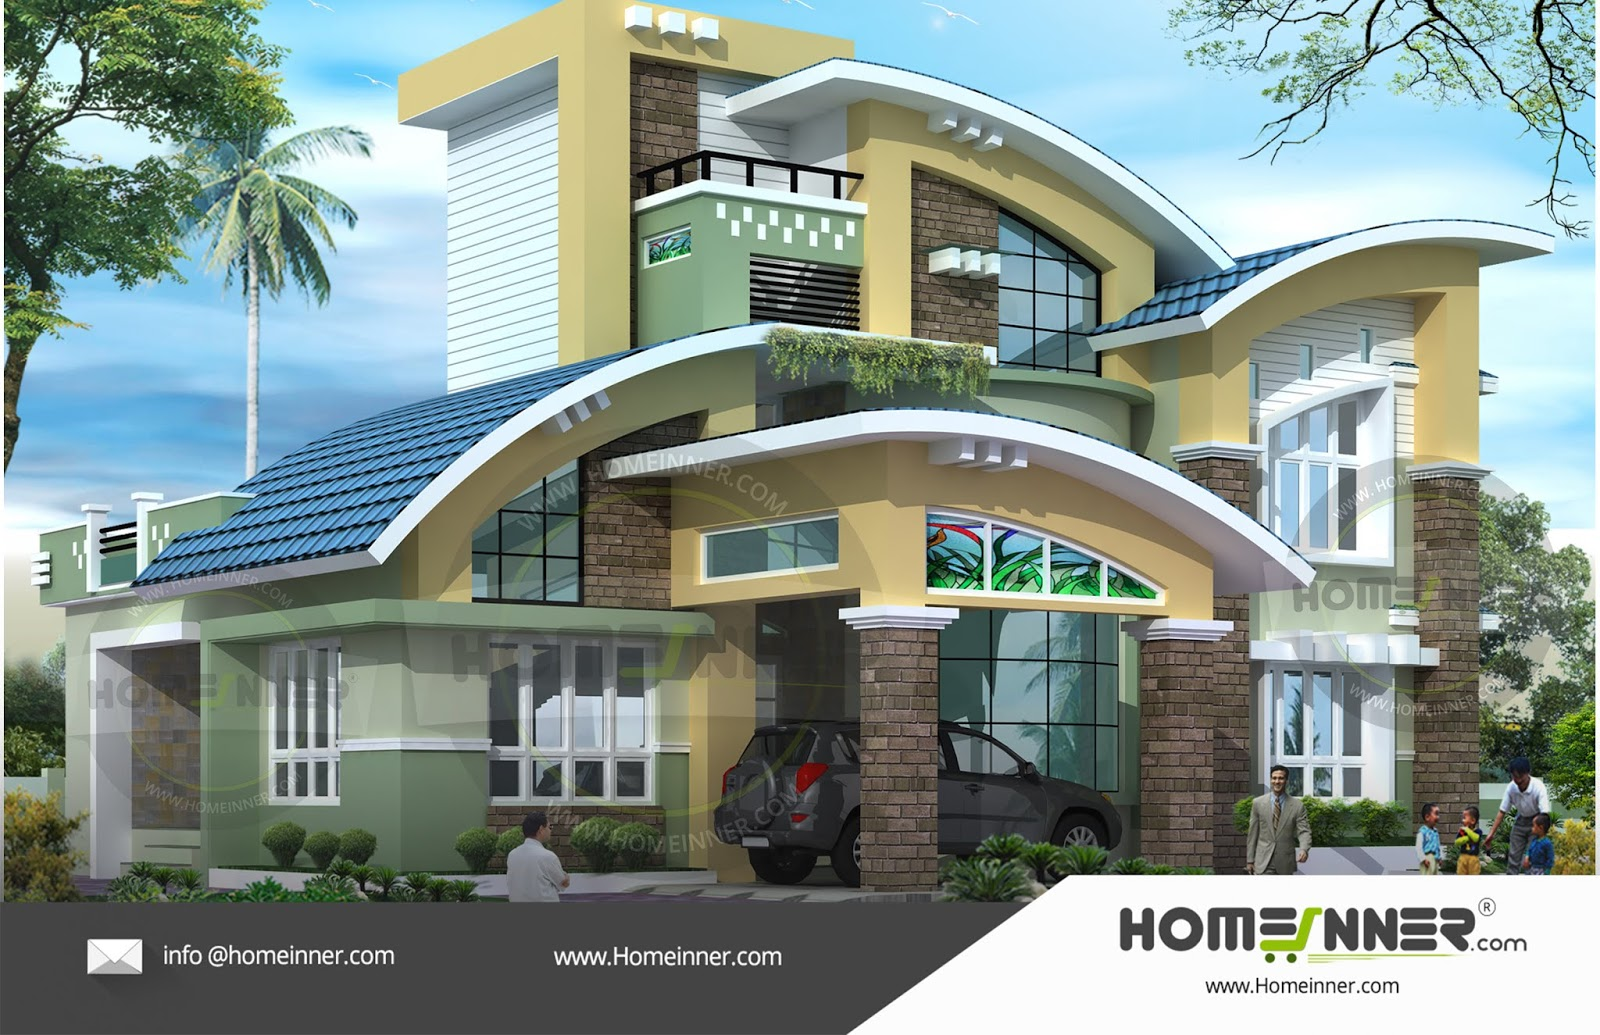 4BHK readymade house plan 2830 sq ft 4 Bedroom 4 Bath